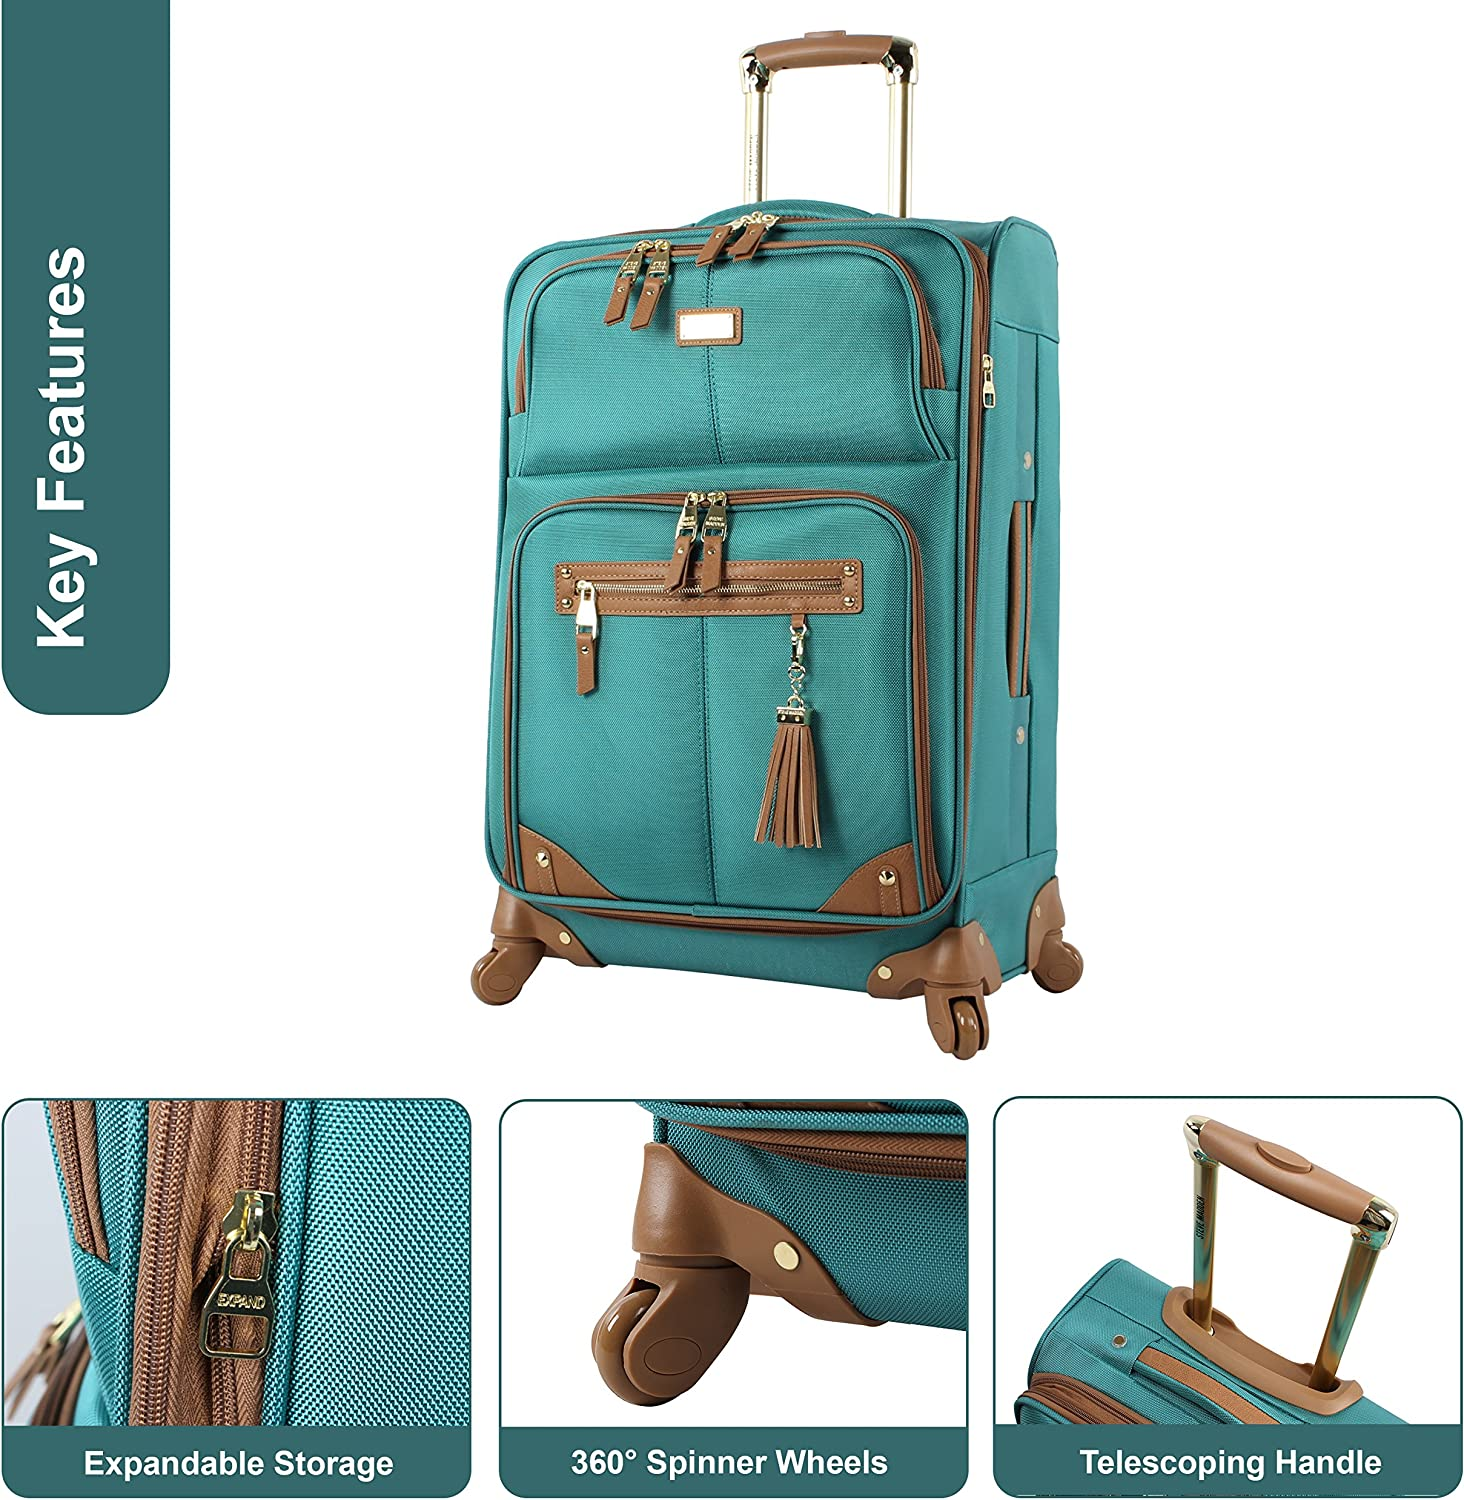 Lightweight 24 Inch Expandable Softside Suitcase Mid-size Rolling 4-Spinner Wheels Checked Bag Peek A Boo Gray, 24in Steve Madden Designer Luggage Collection